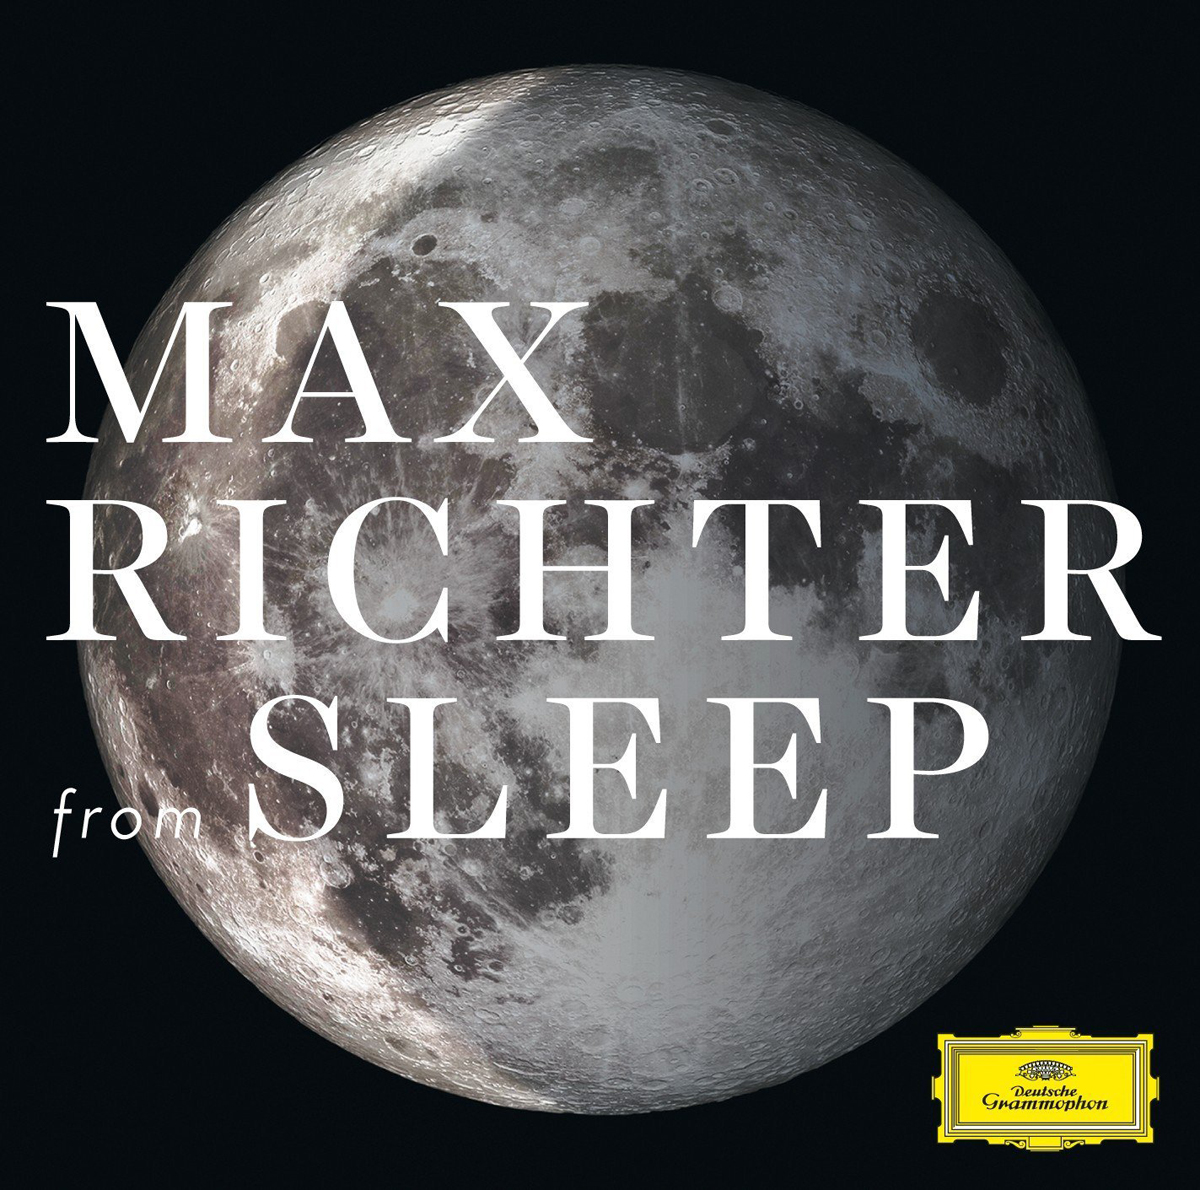 Макс Рихтер,American Contemporary Music Ensemble Max Richter. From Sleep max richter max richter songs from before